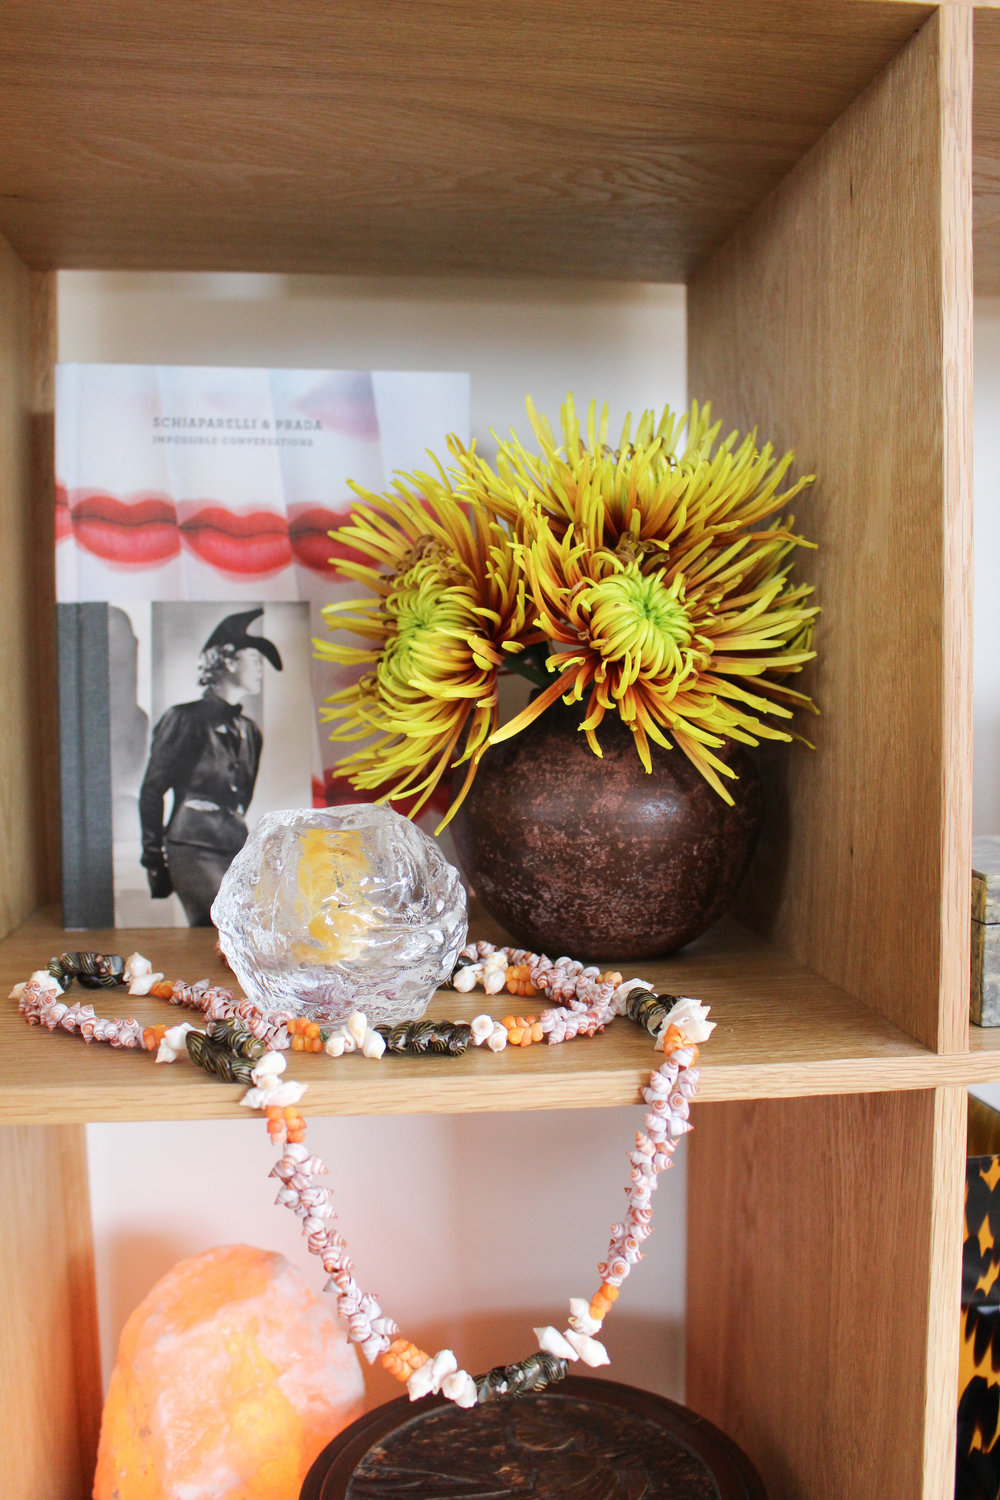 Classic Megan decor: everything on this shelf except the book and the flowers is from an op shop.  The book is  Impossible Conversations ; the flowers are chrysanthemums from Moore Wilsons